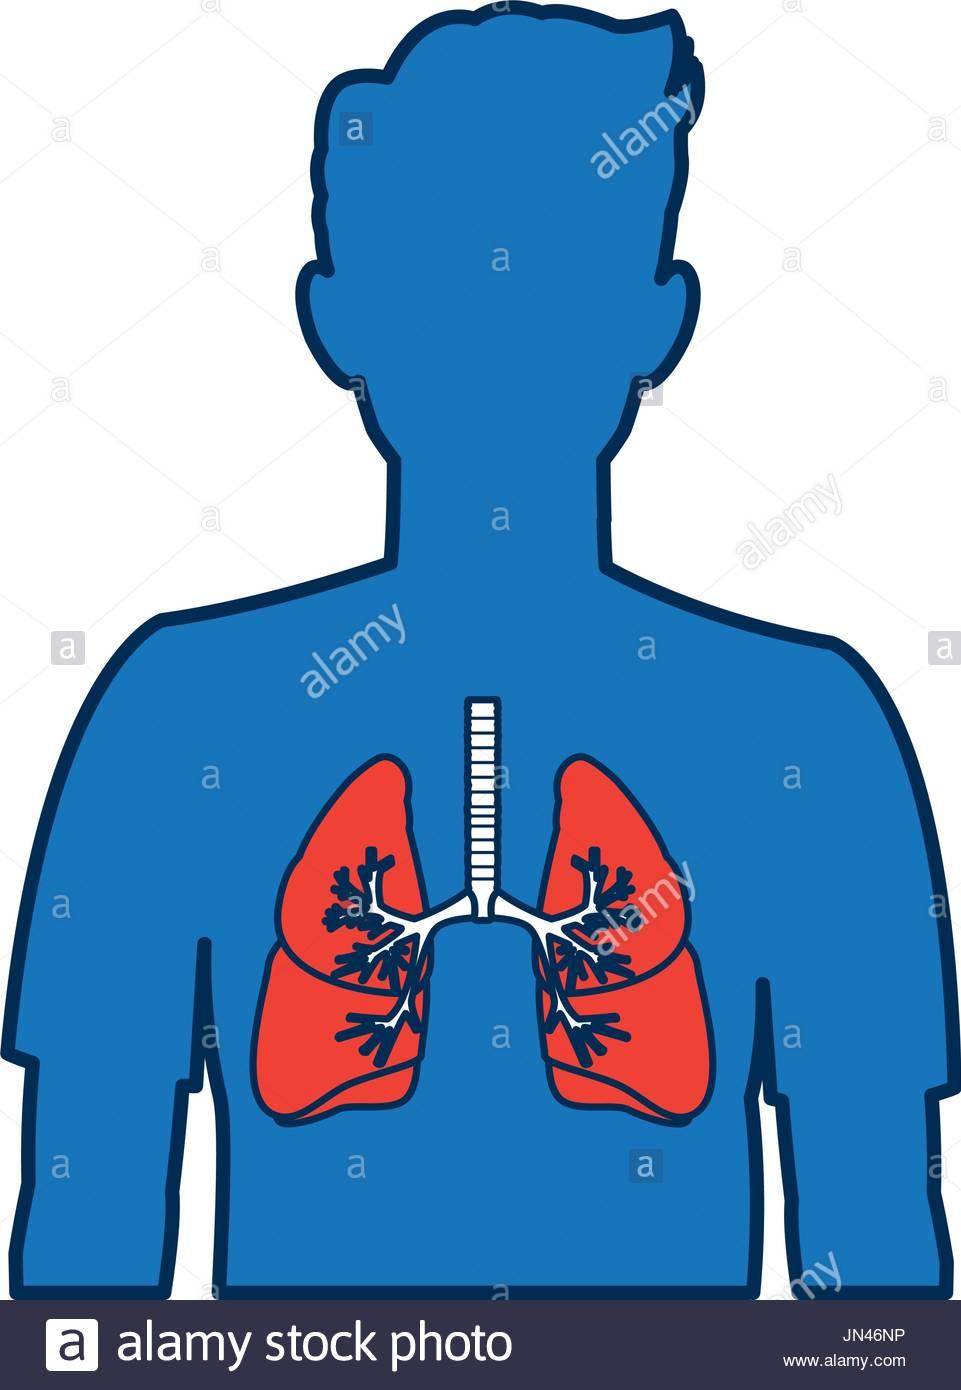 961x1390 Respiratory System Stock Photos Amp Respiratory System Stock Images